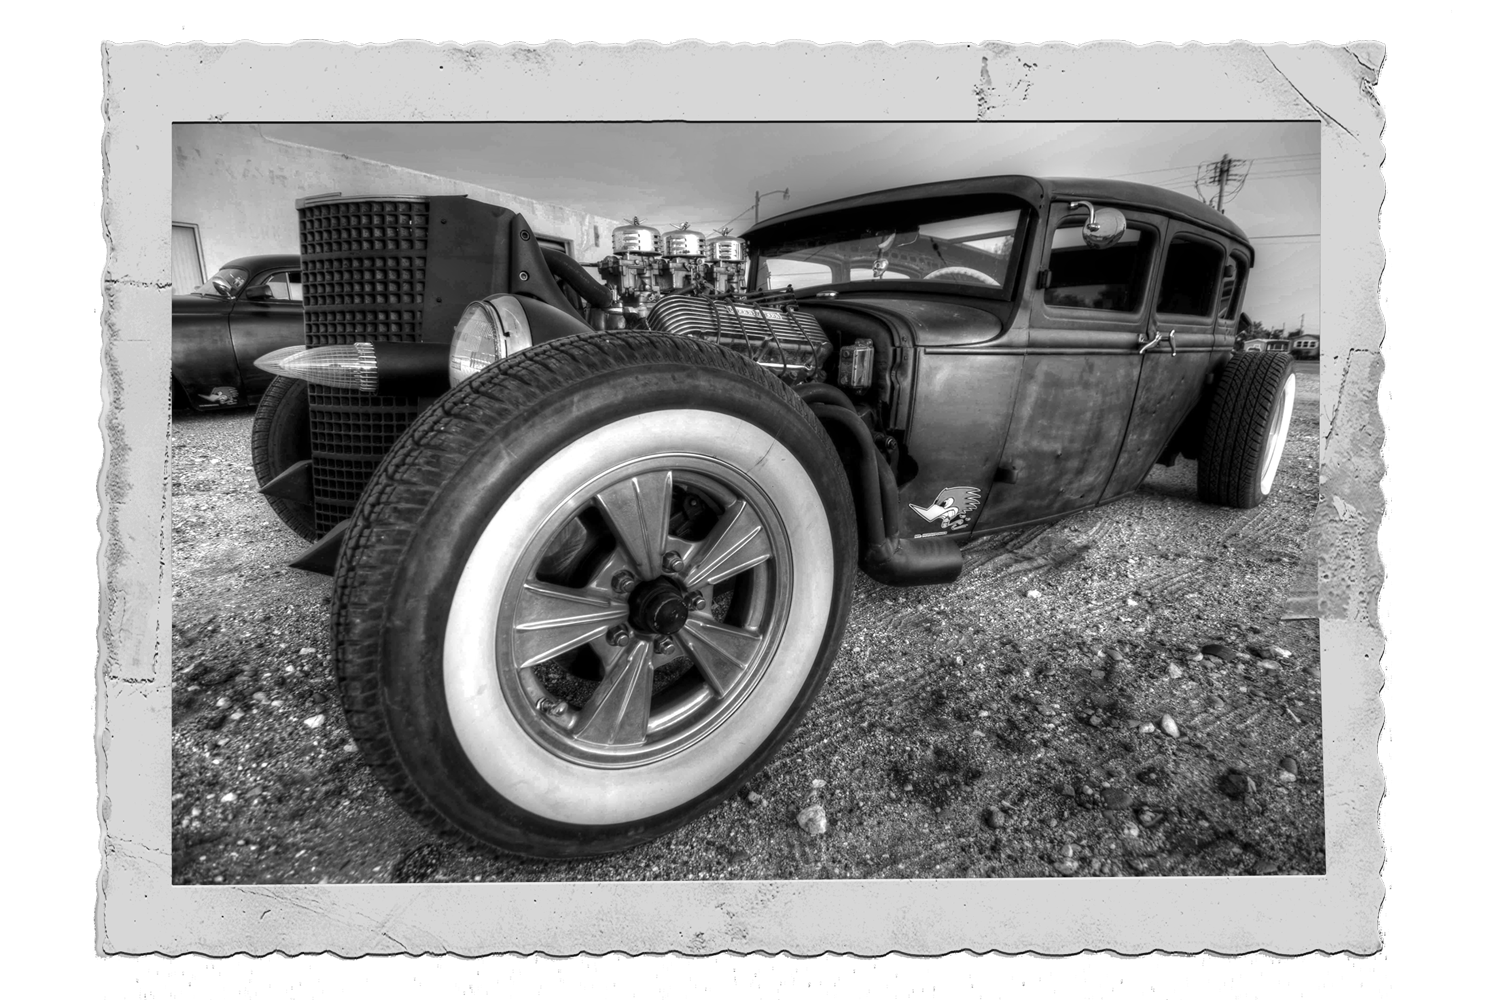 Rat Rod Car Show http://www.jbrooks-photography.com/2011/08/lake-scott-car-show/rat-rod/